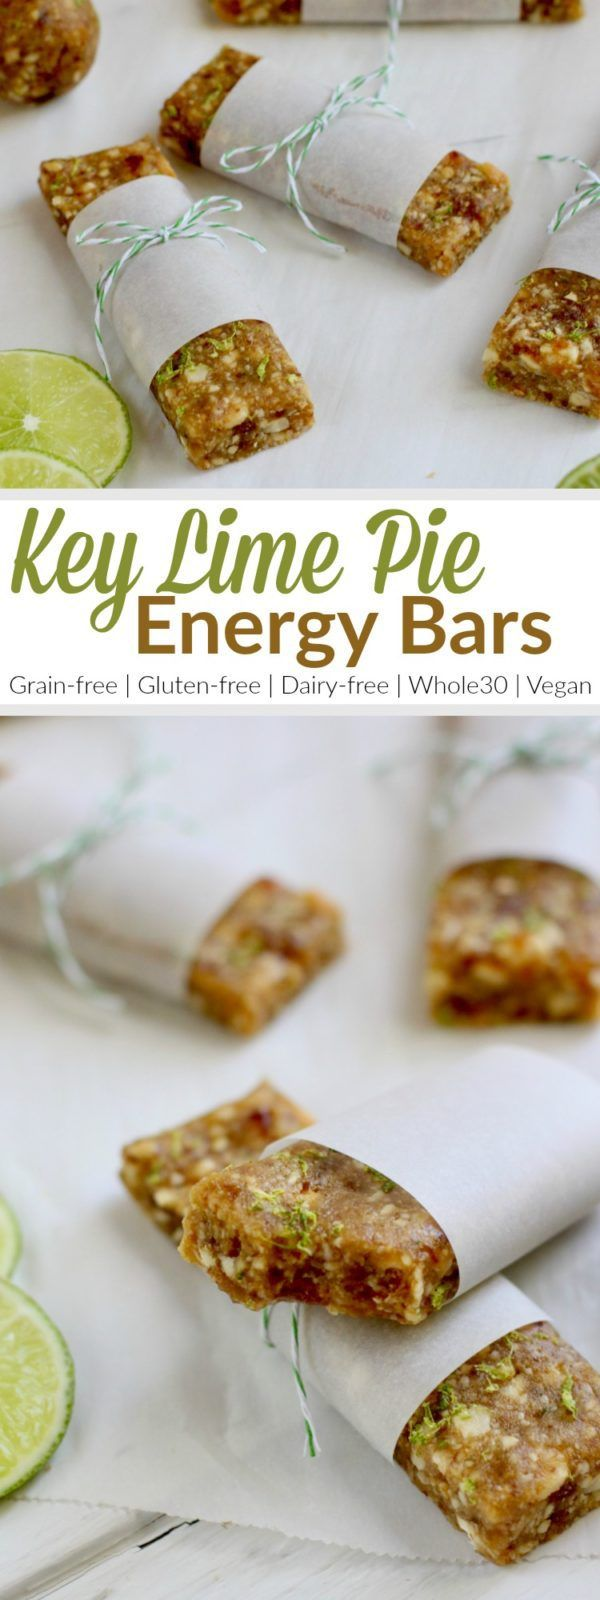 Key Lime Pie Energy Bars | The bars are a knockoff of the fruit and nut bars everyone loves. Feel free to roll them into balls for a bite-sized treat or add a scoop or two of collagen a little protein boost | Paleo | Gluten-free | Grain-free | Dairy-free | Vegan | Egg-free | http://therealfoodrds.com/key-lime-pie-energy-bars/